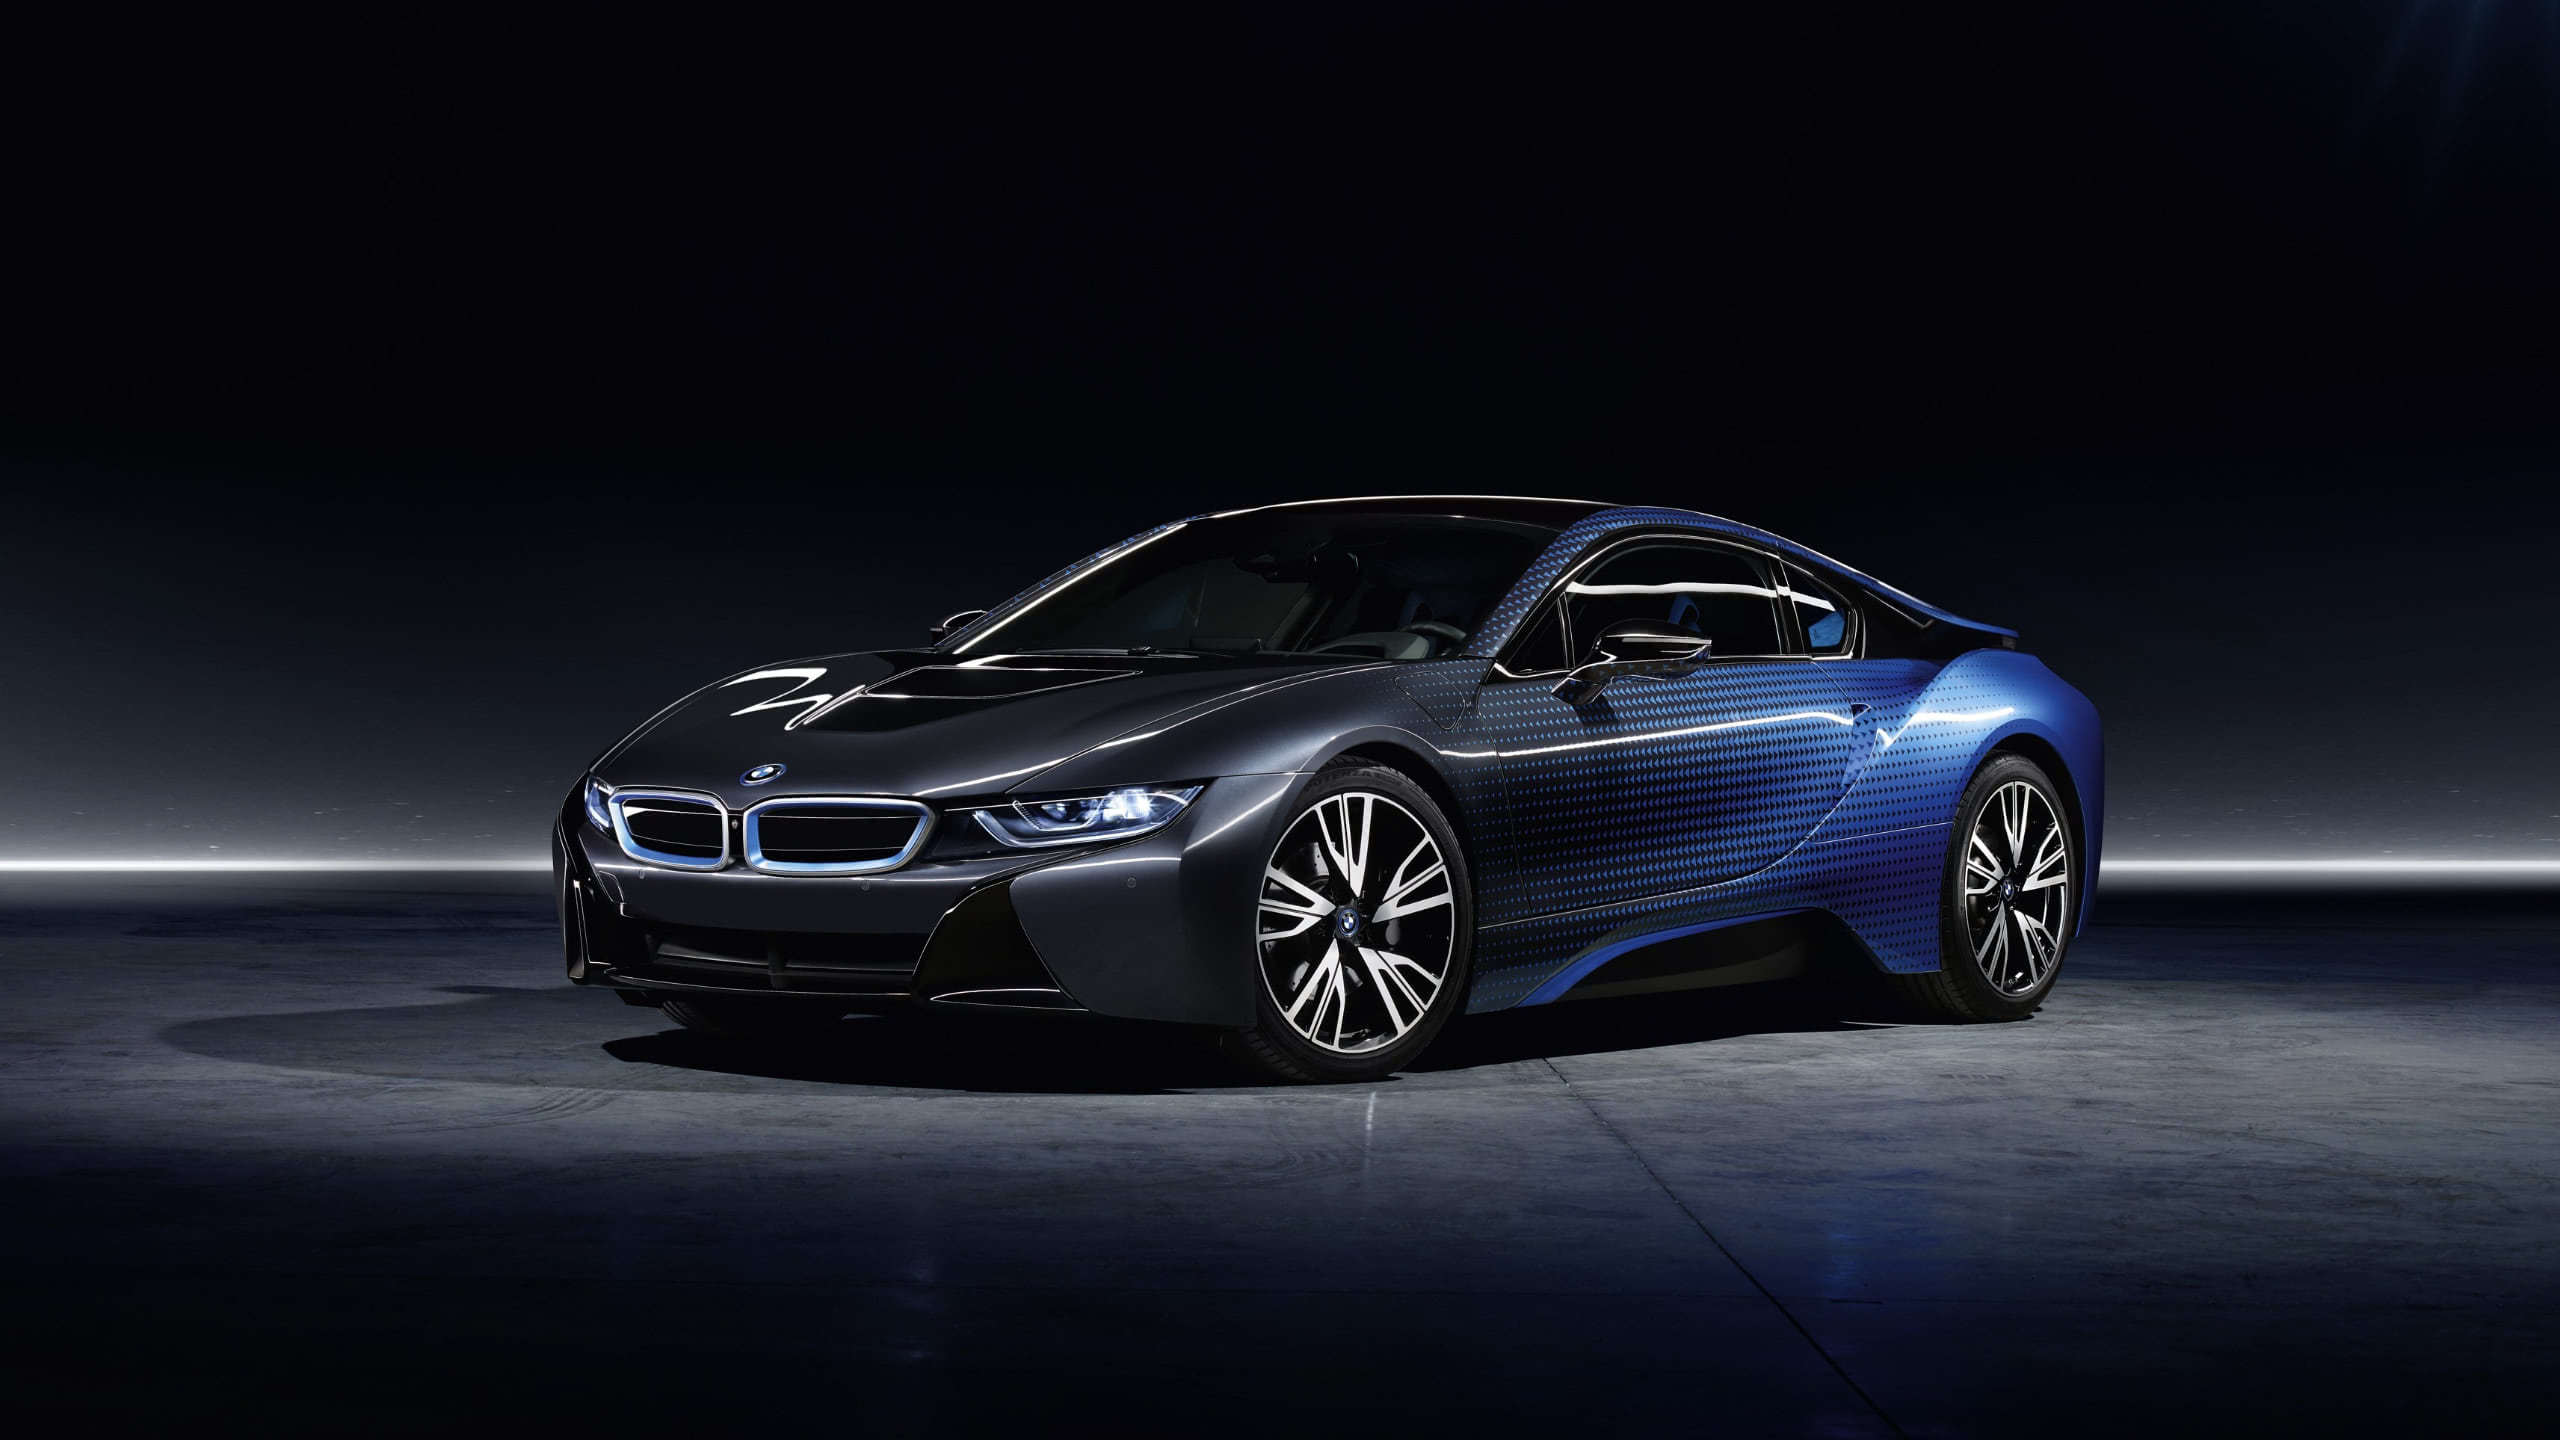 bmw i8 garage italia wqhd 1440p wallpaper